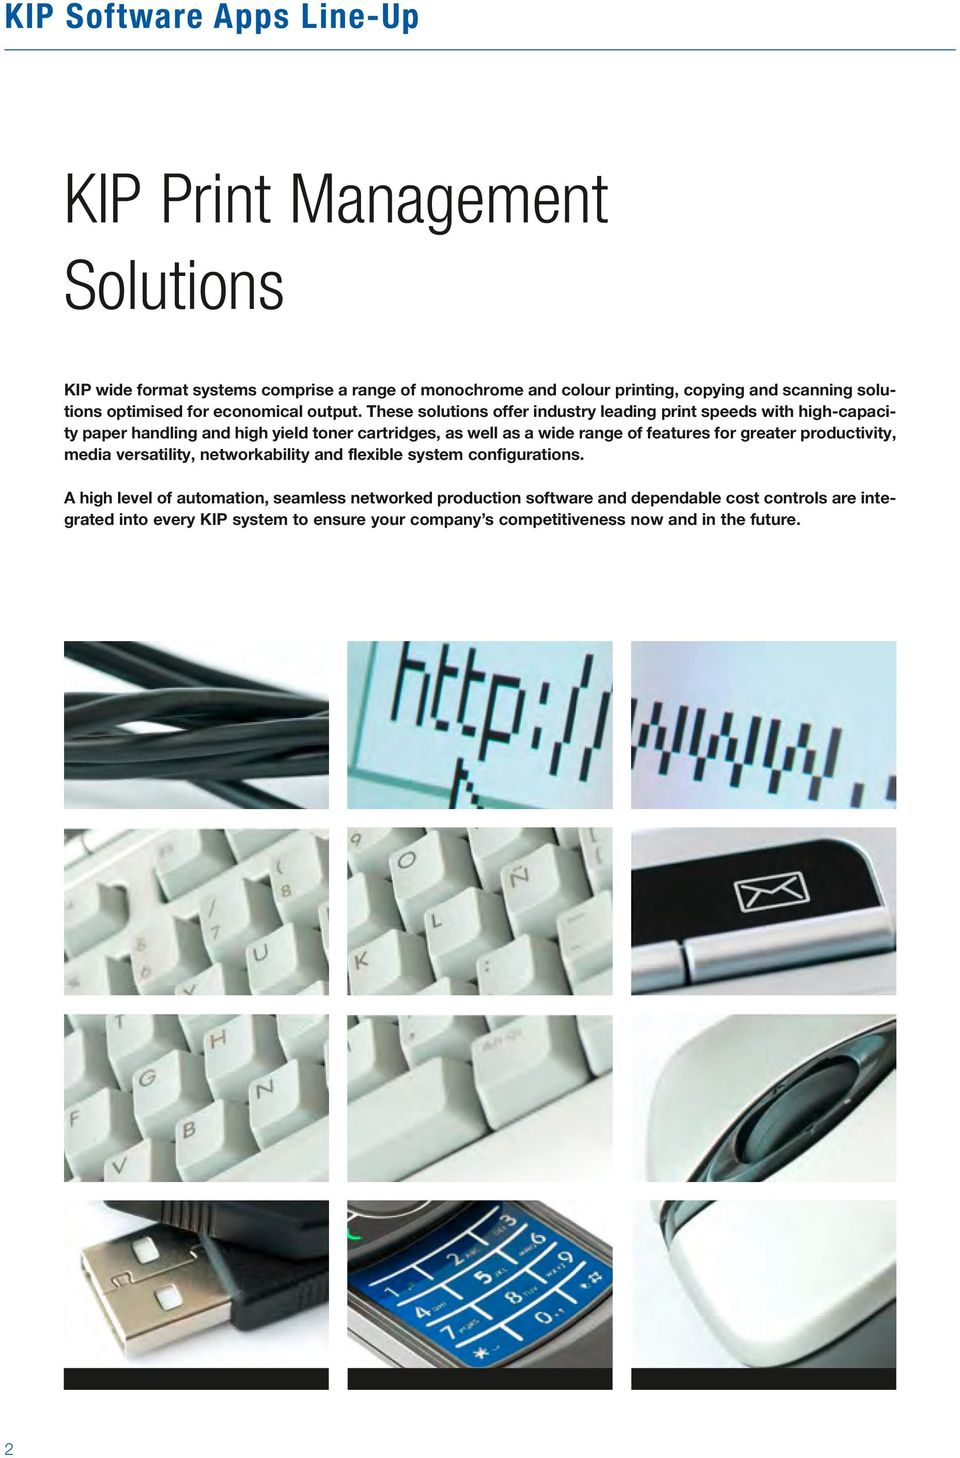 These solutions offer industry leading print speeds with high-capacity paper handling and high yield toner cartridges, as well as a wide range of features for